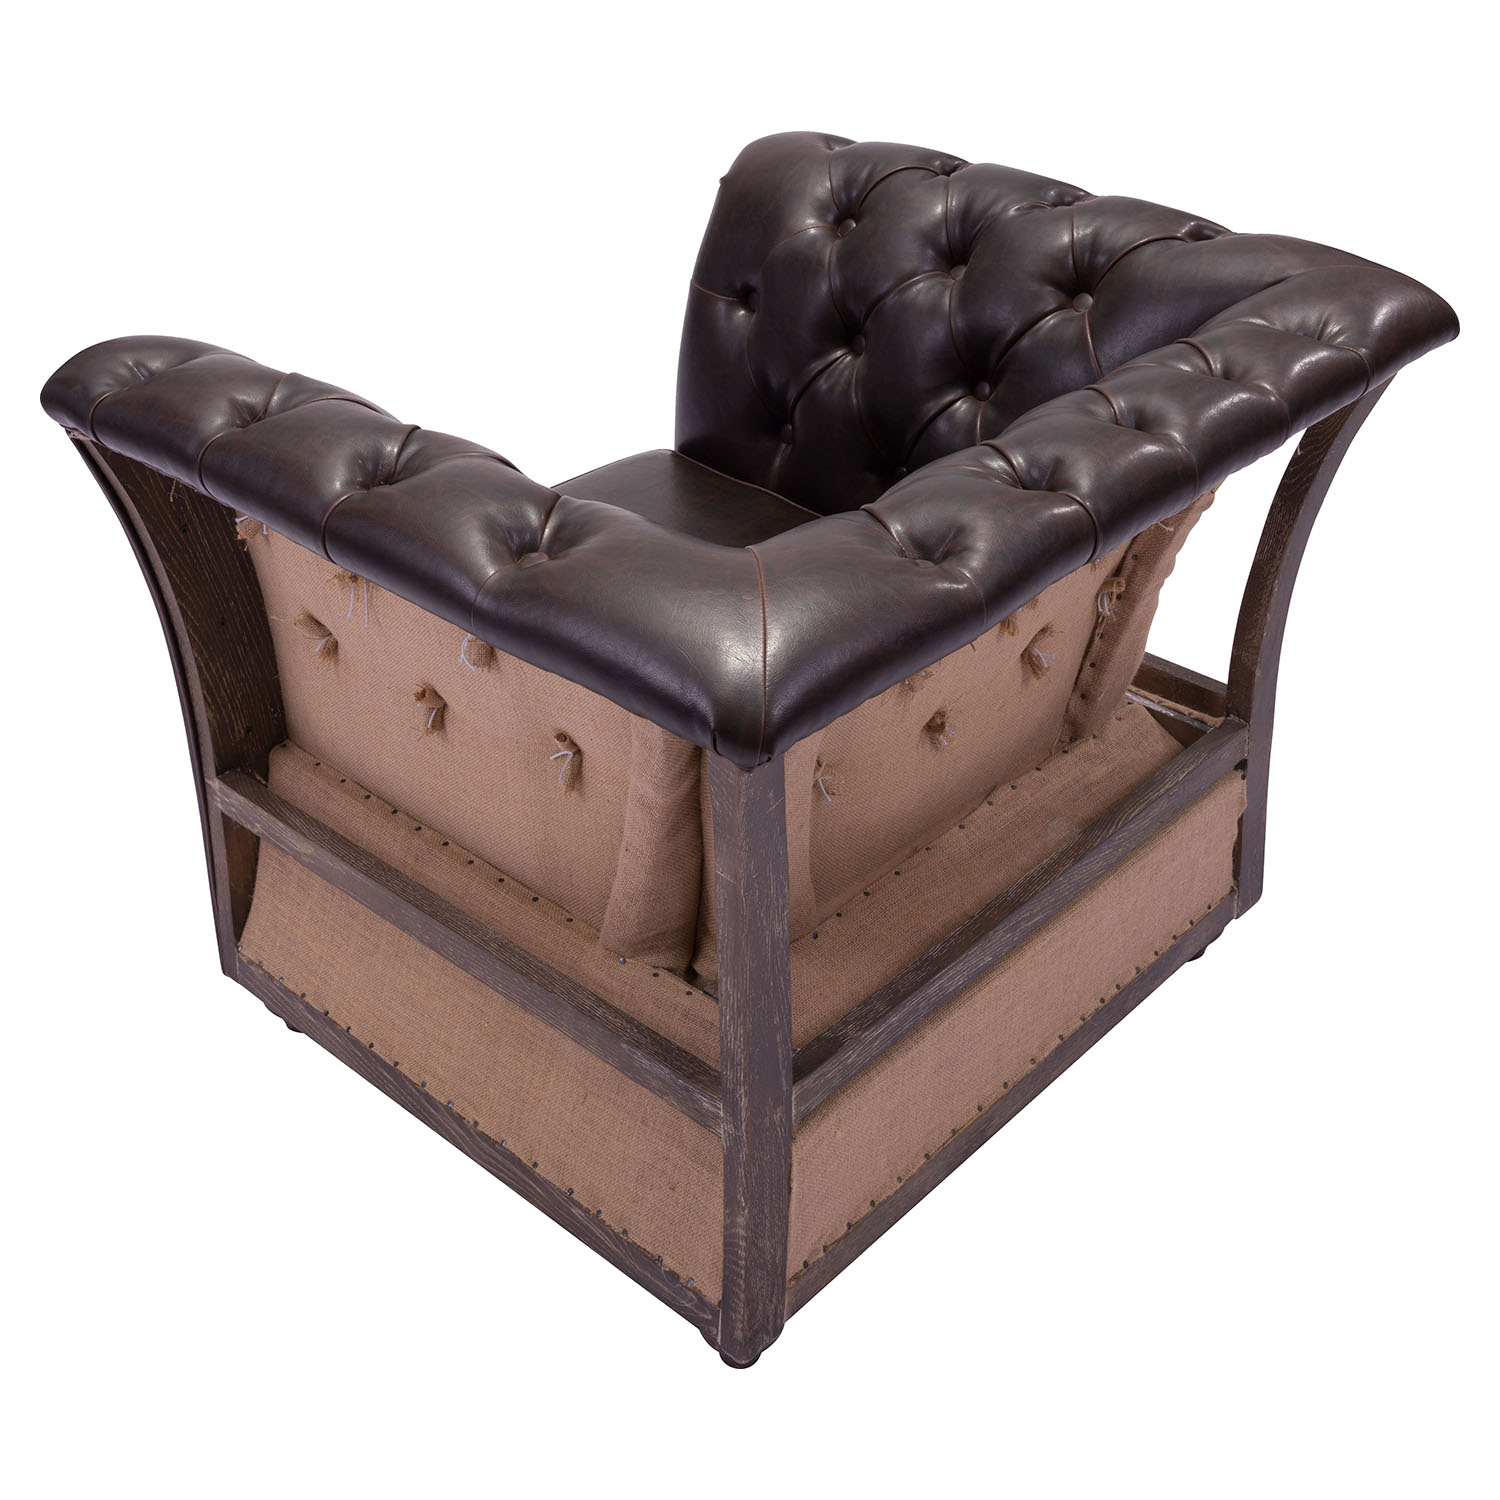 Rodeo Drive Arm Chair - Brown - ZM-98386